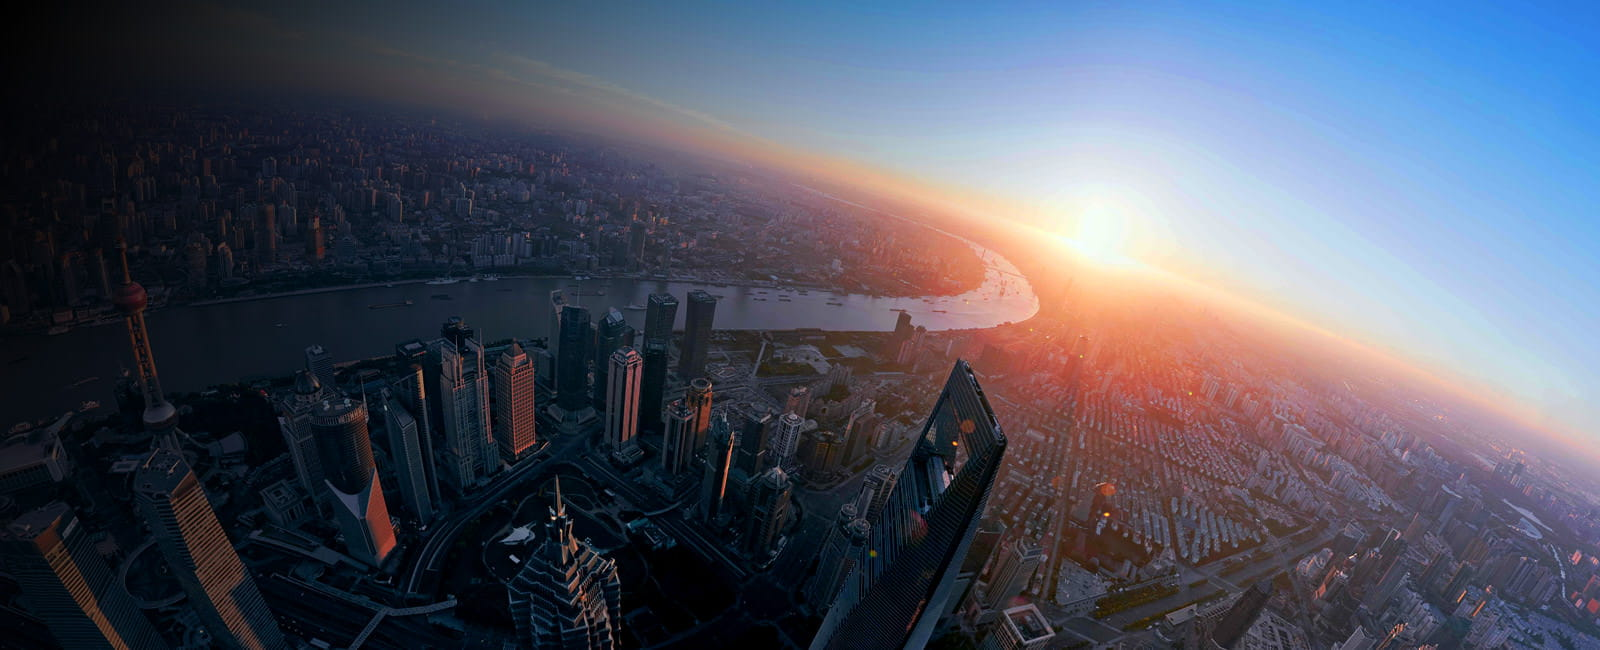 The sun rises over the Shanghai skyline